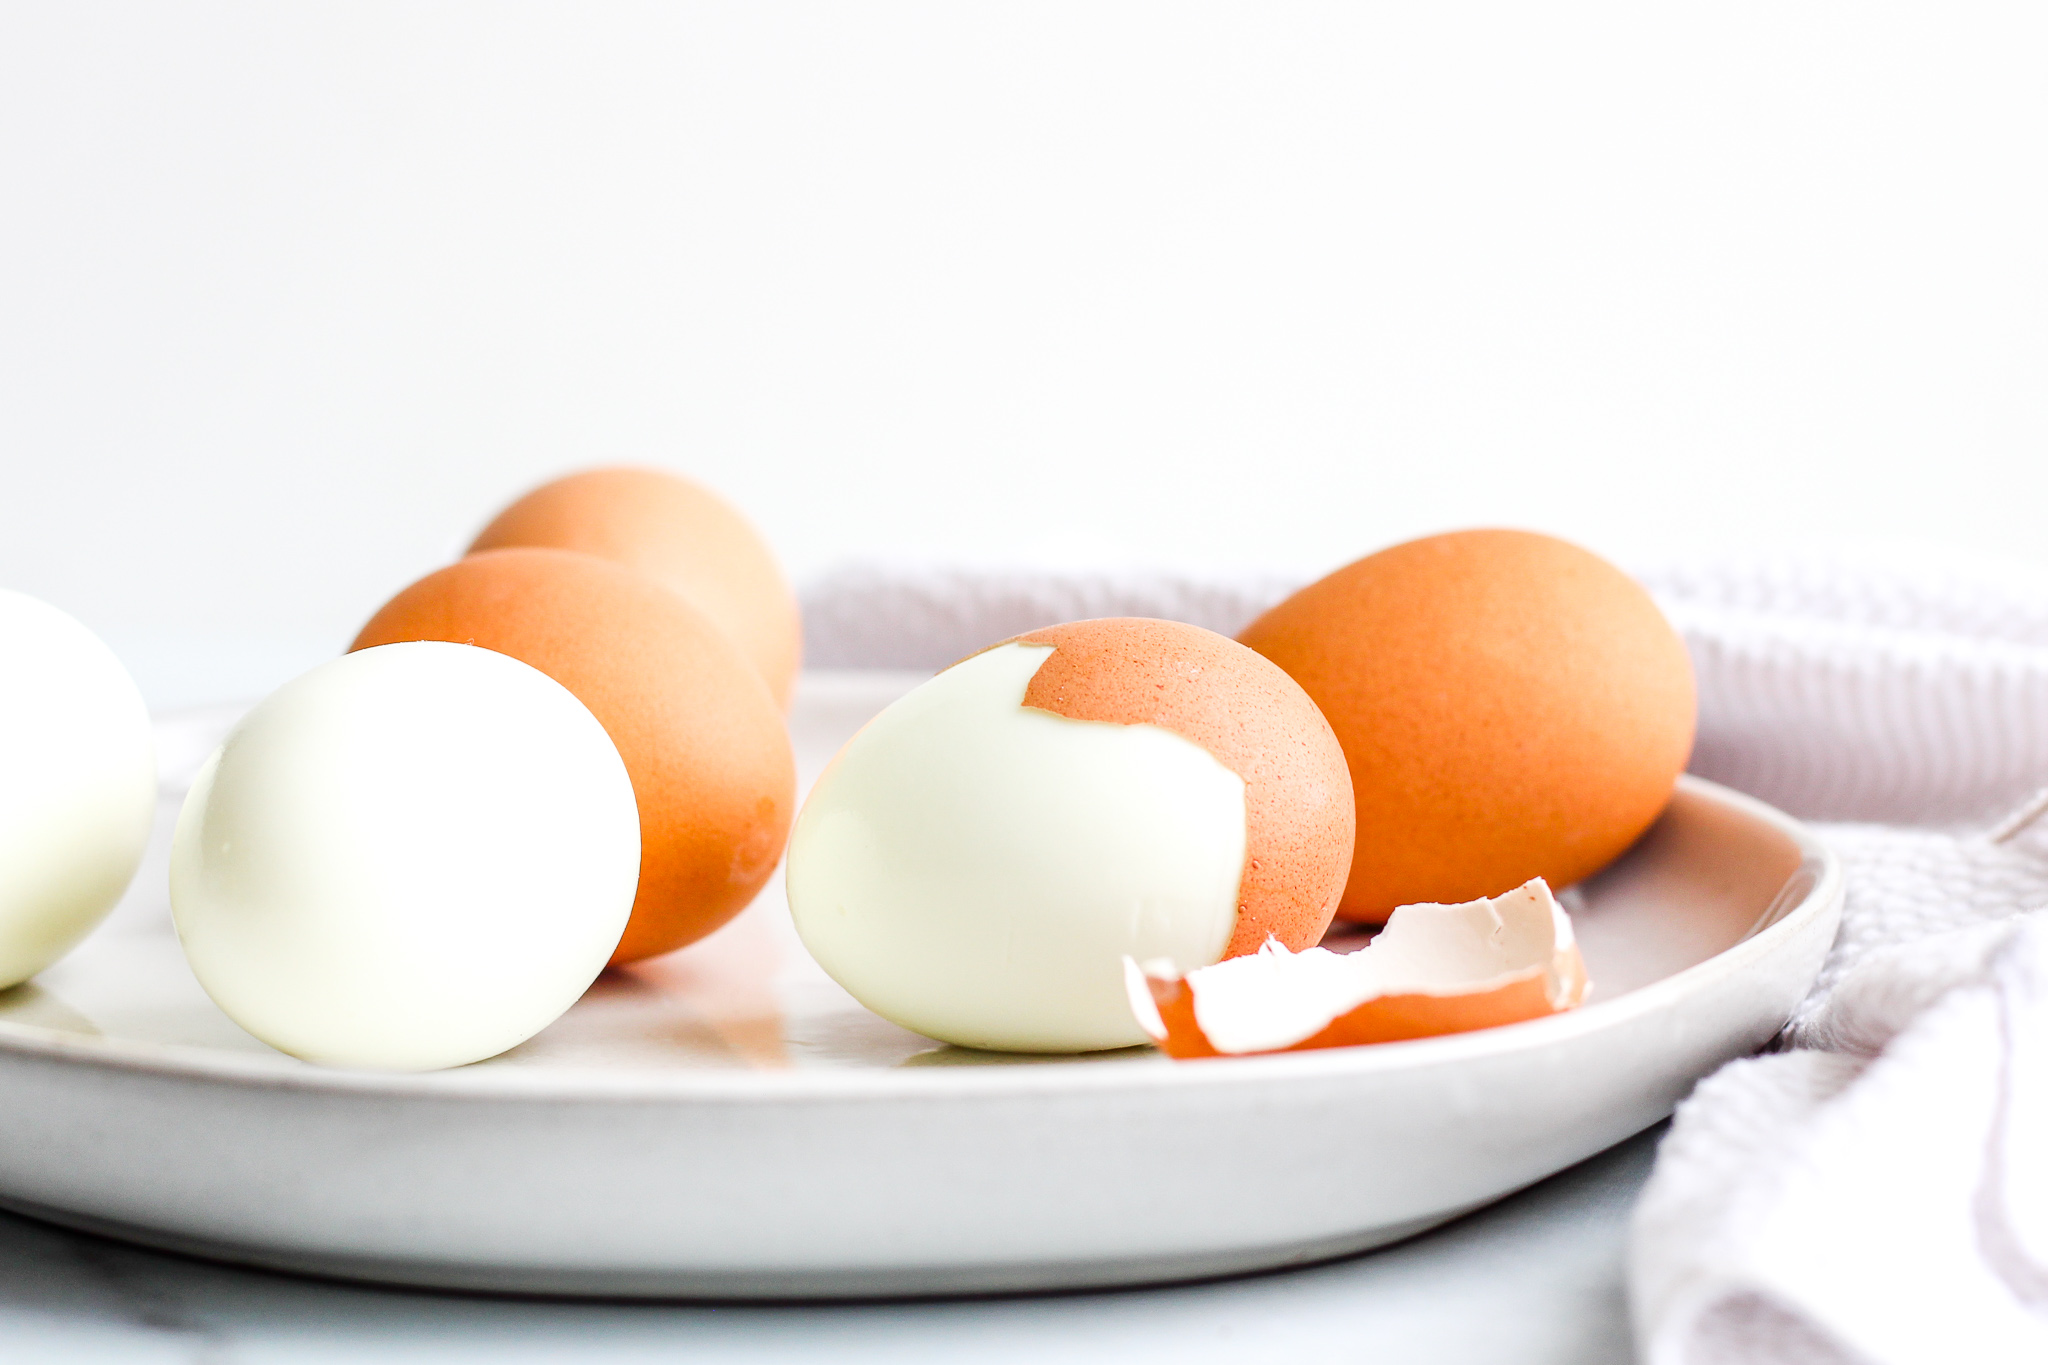 Hardboiled eggs on a white plate, one is peeled and some in their shells